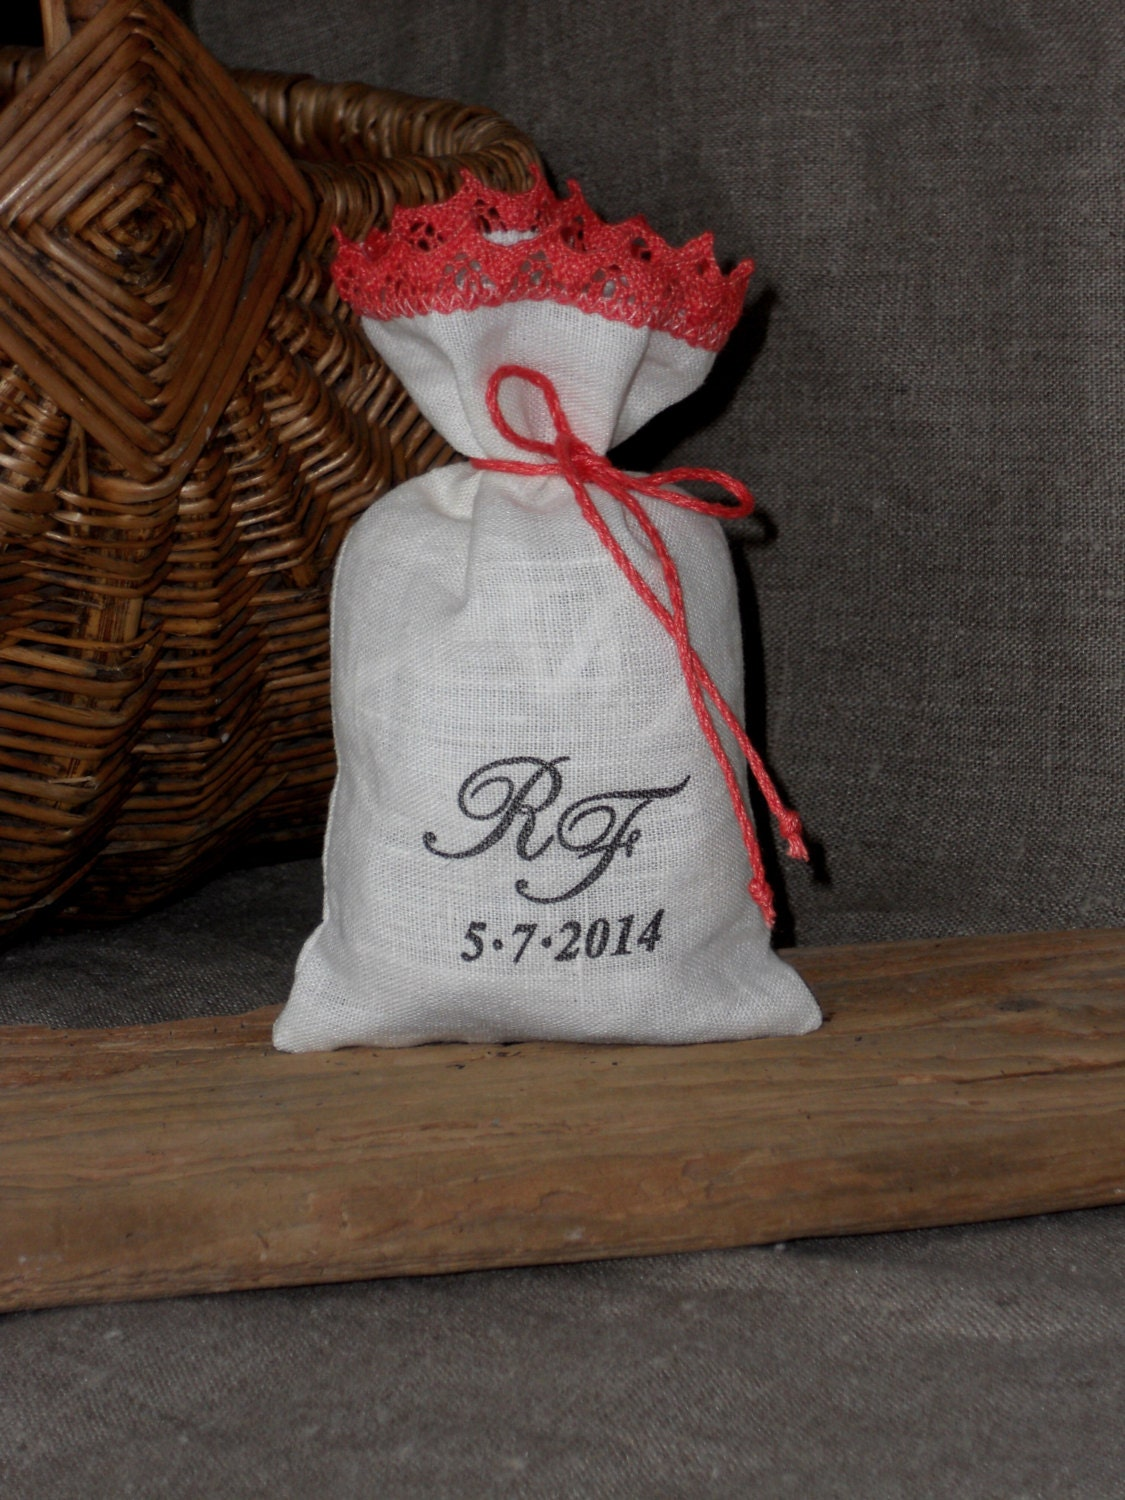 Wedding Favor Bags Coral : Wedding favor bags with coral lace personalized gift by cikucakuu